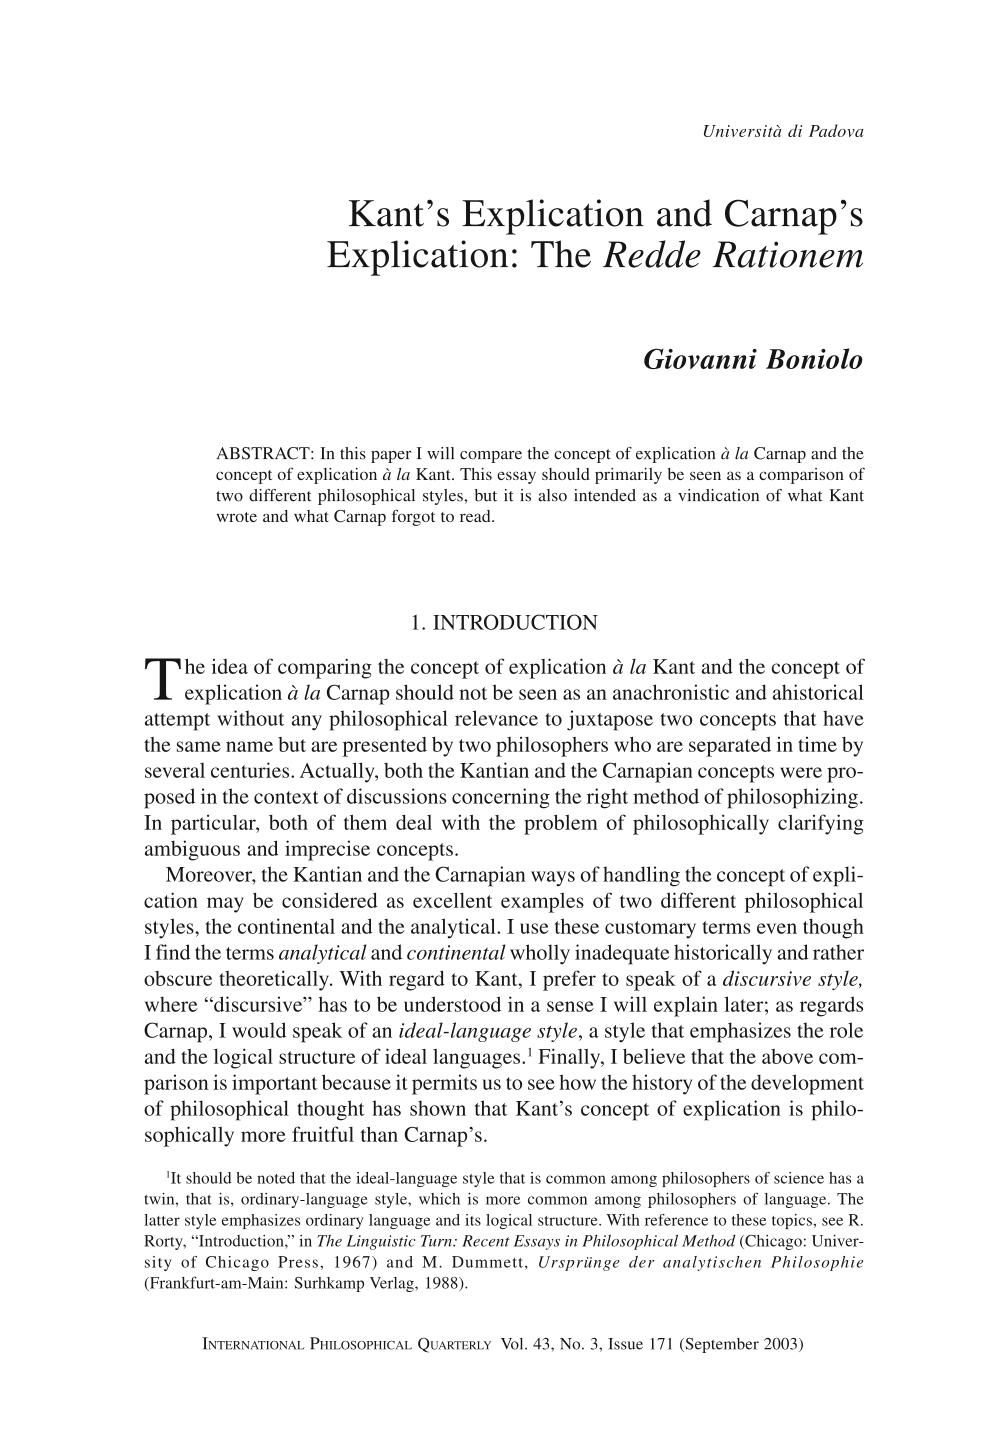 kant s explication and carnap s explication the redde rationem document is being loaded